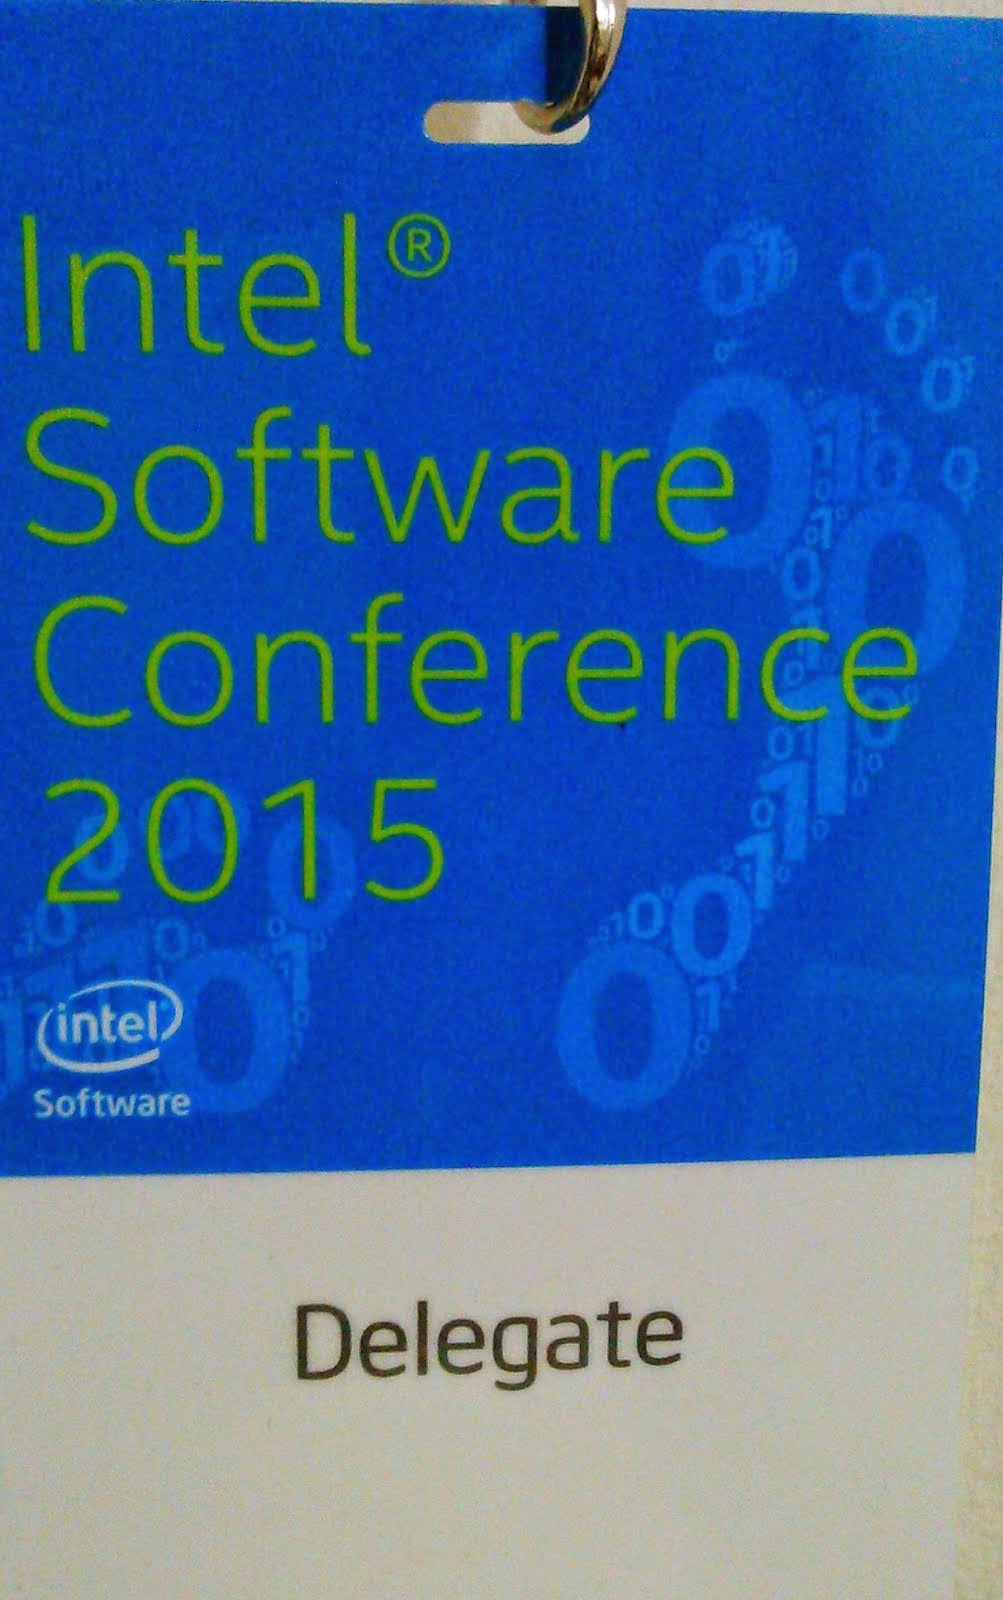 Intel Software Conference 2015